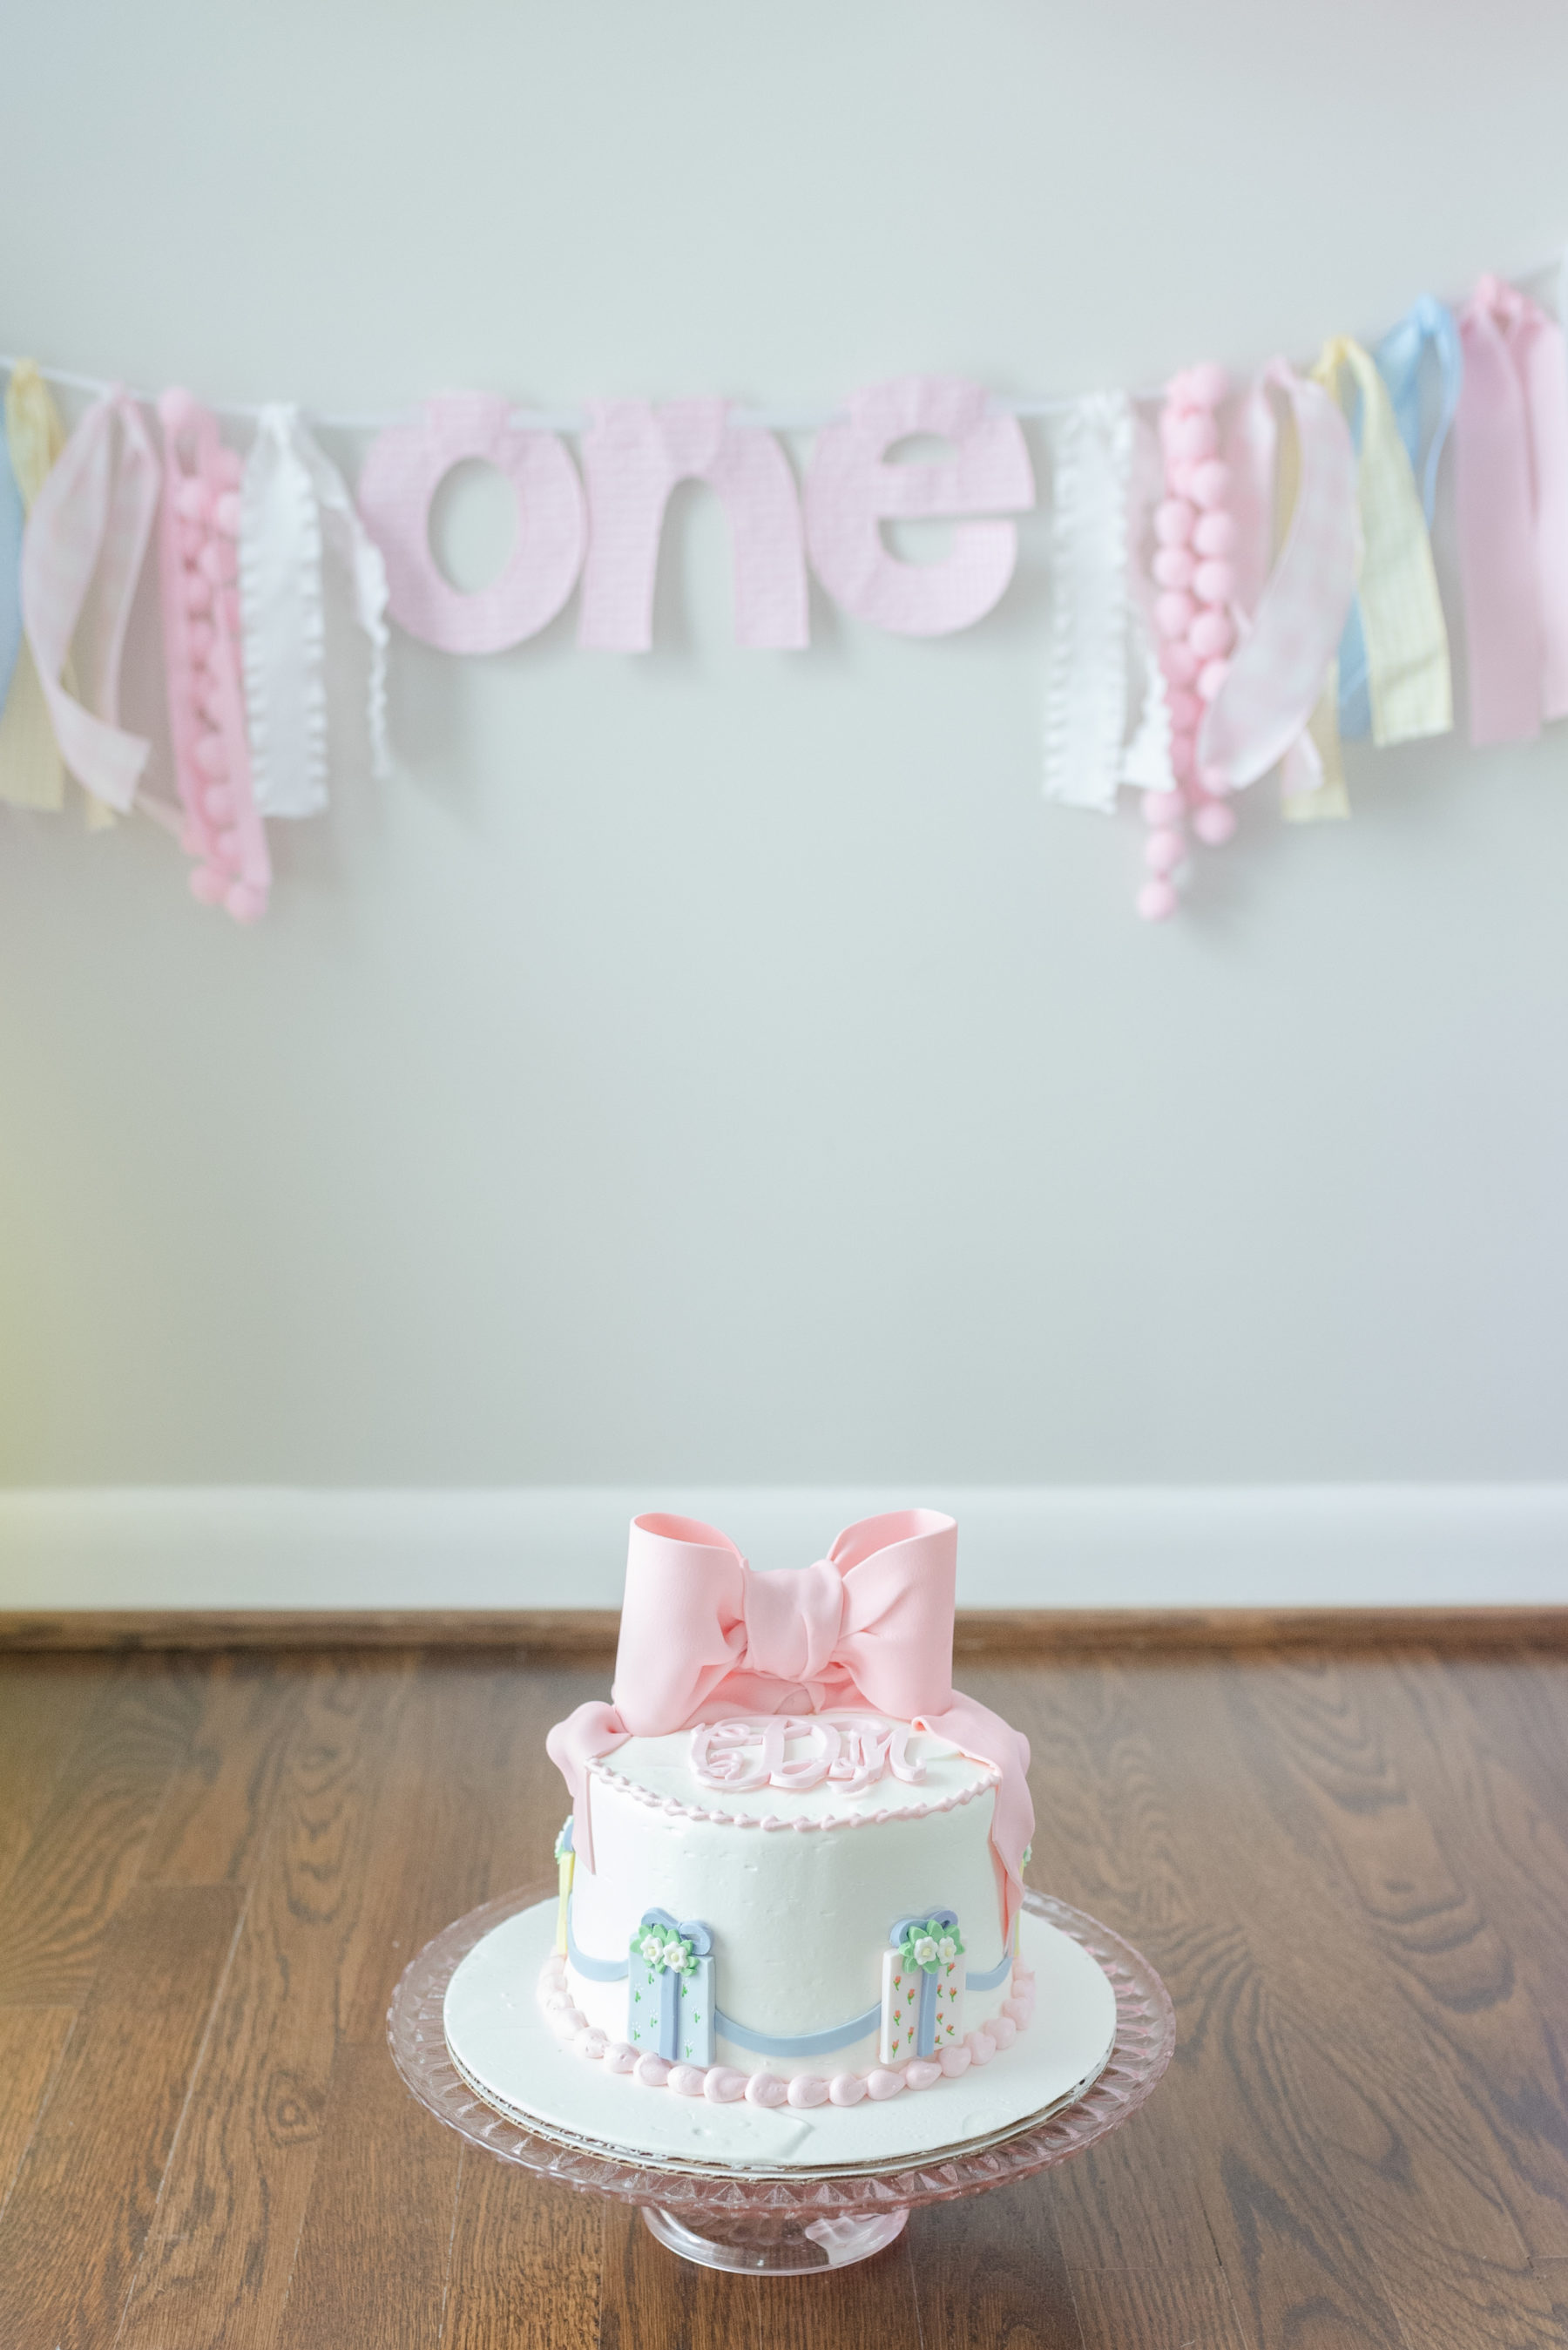 Pastel Wedding Cake Design: Gorgeous Pastel 1st Birthday Party by Dolly Delong featured on Nashville Baby Guide